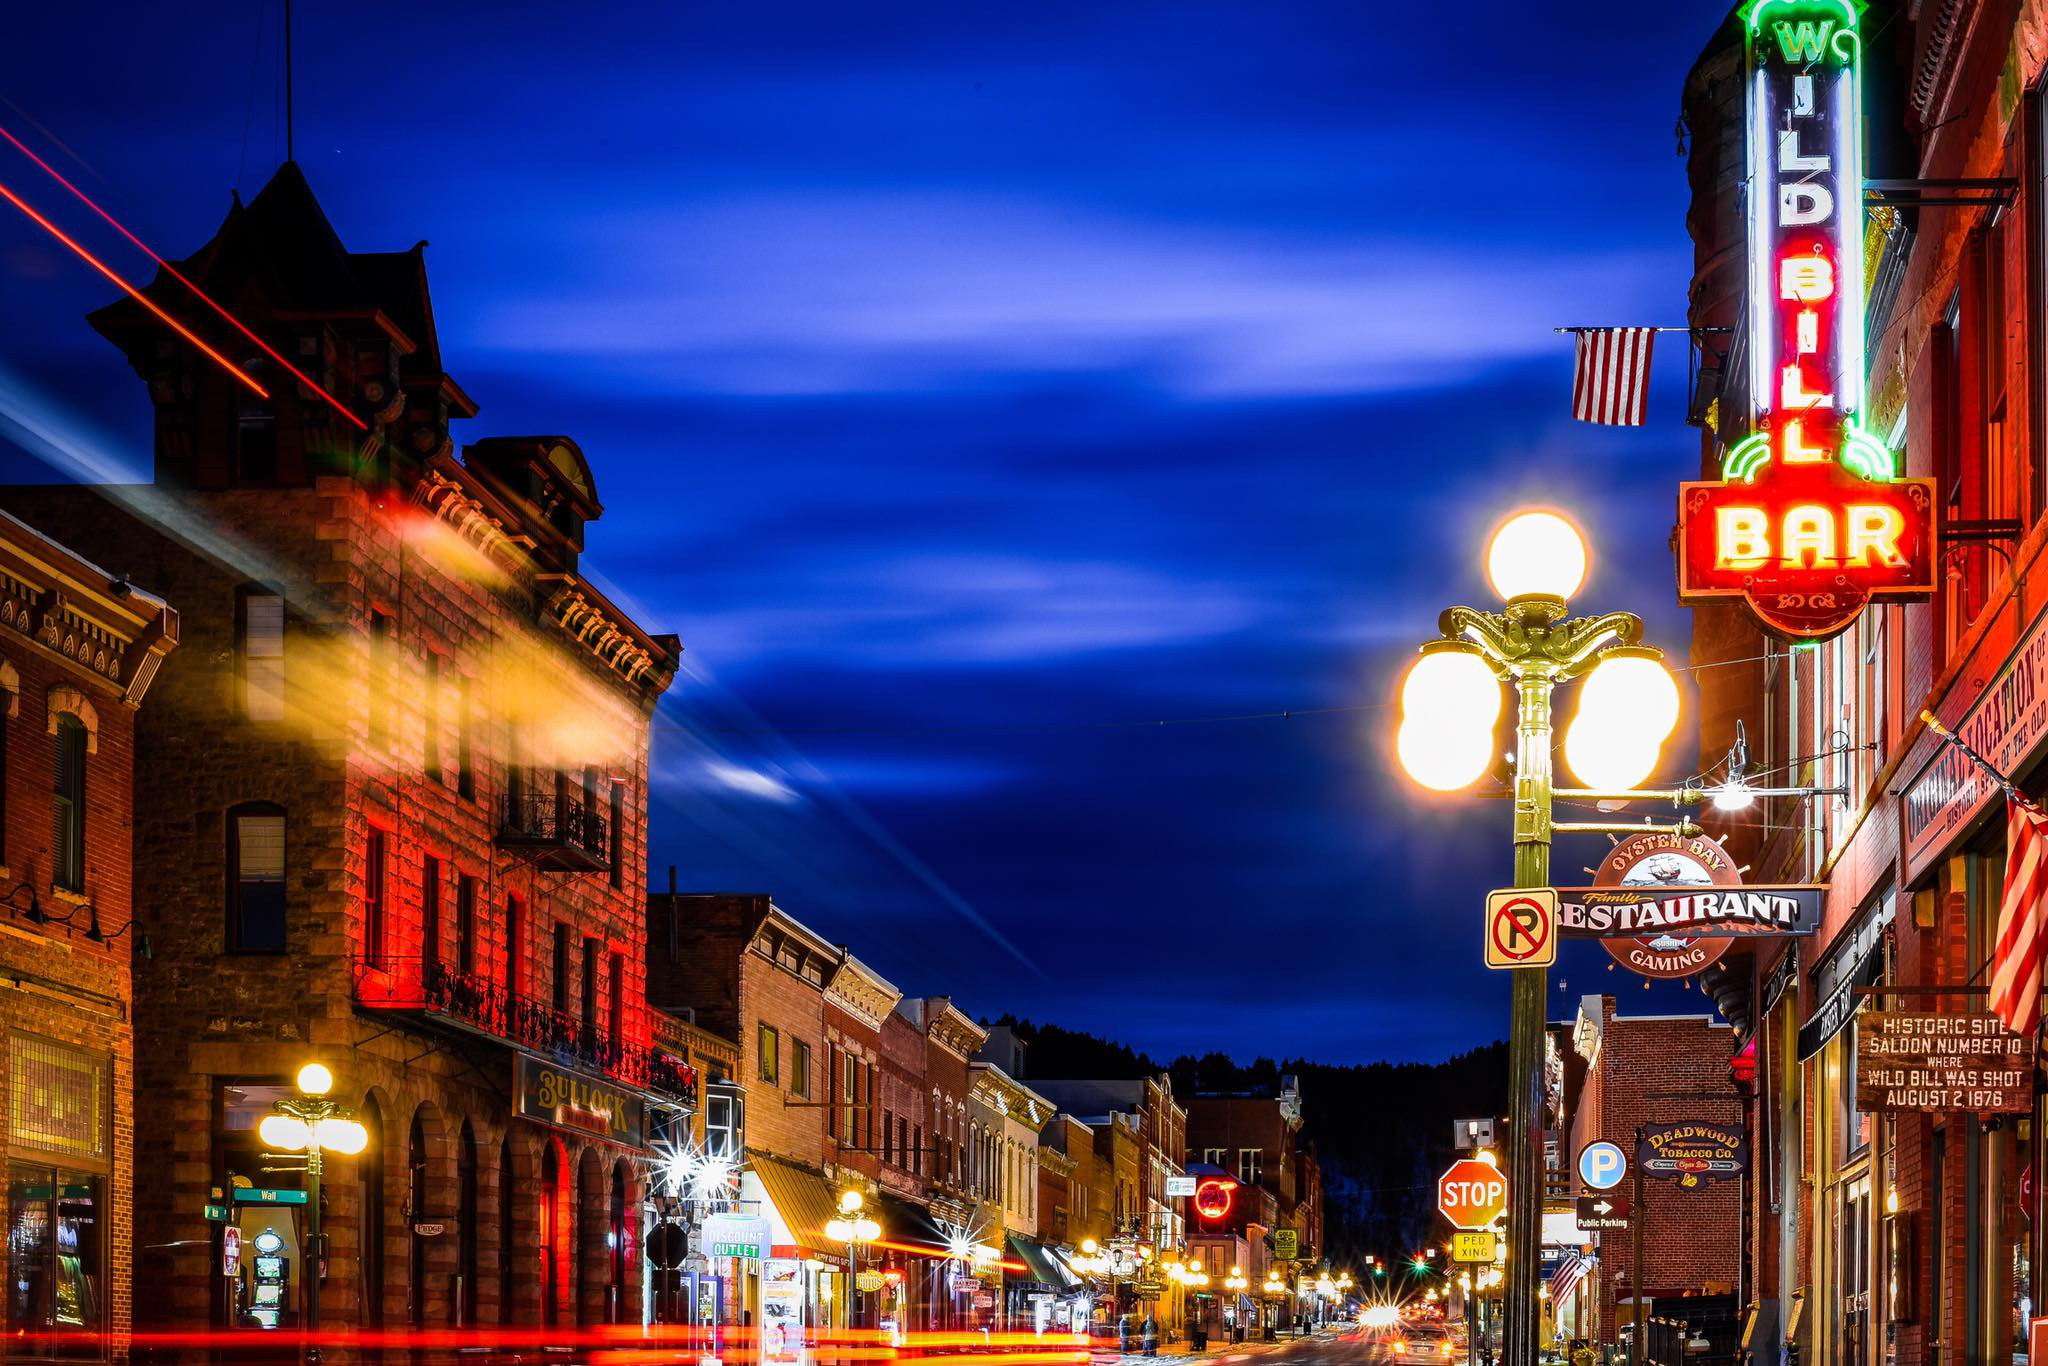 View of Main Street, Deadwood, SD at night.